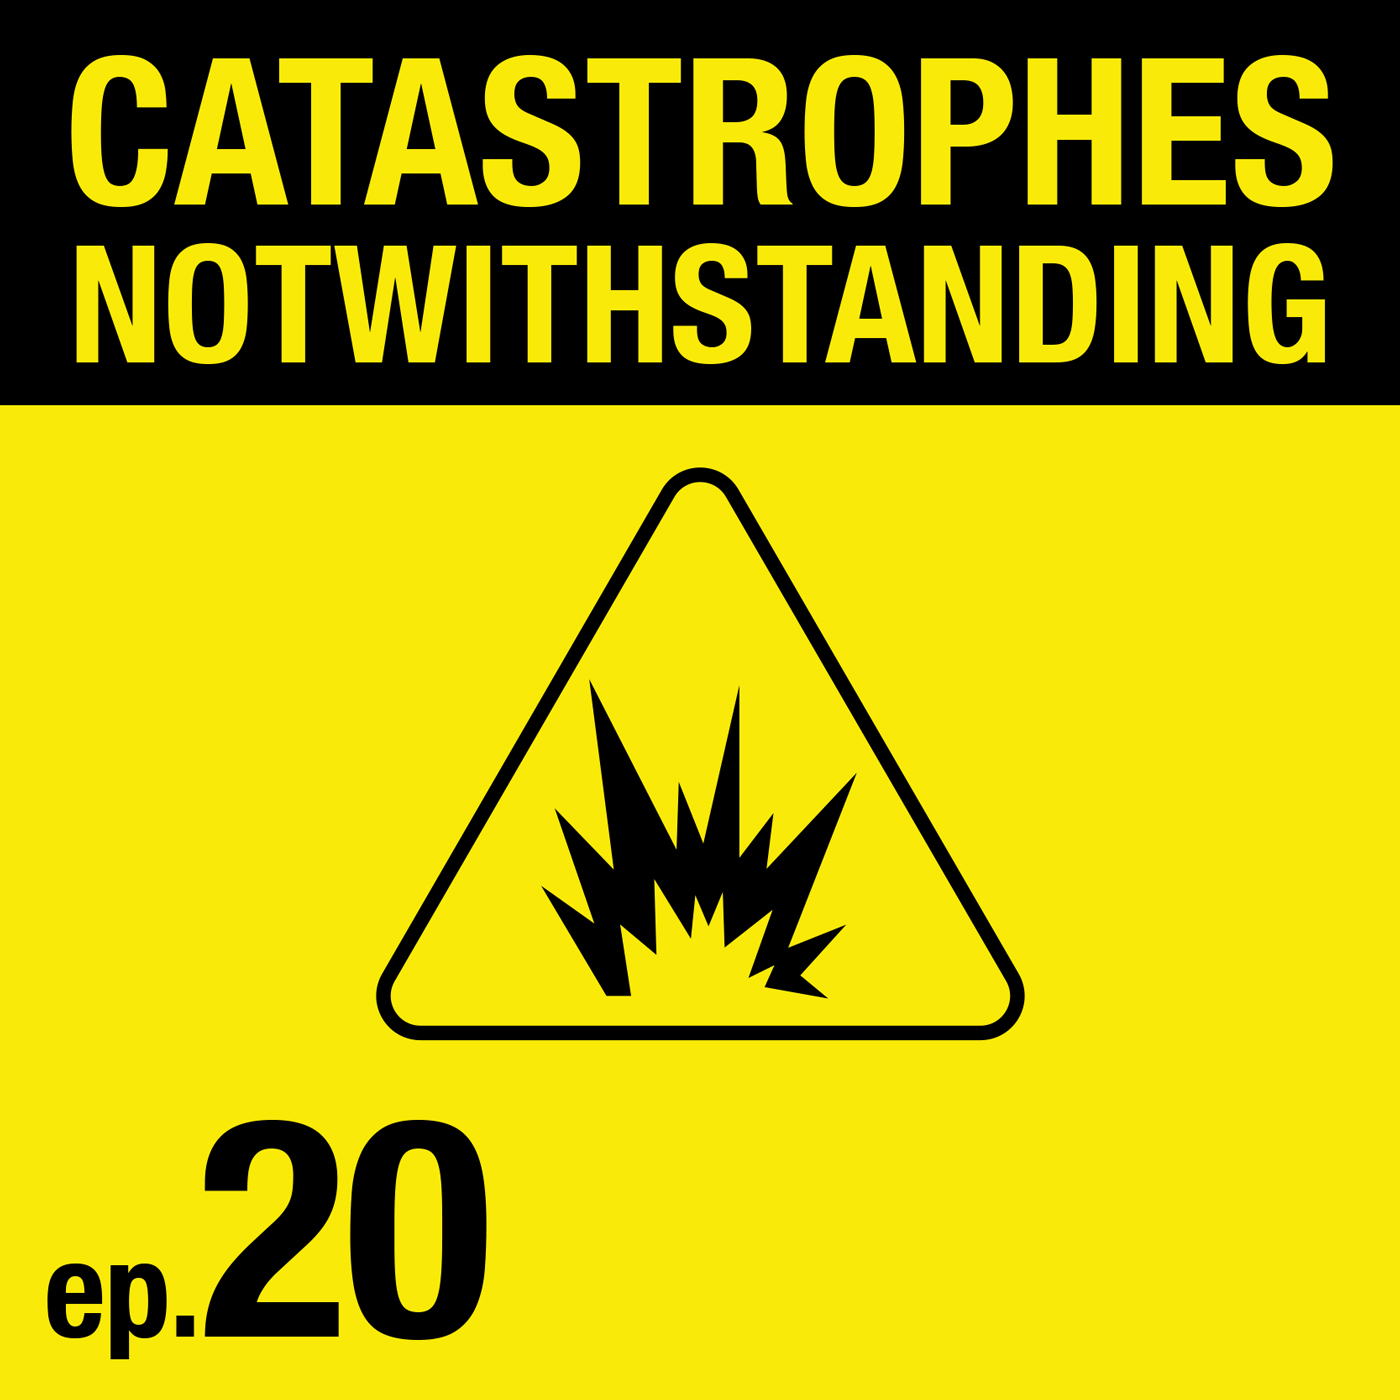 Cover Image of Catastrophes Notwithstanding Episode 20